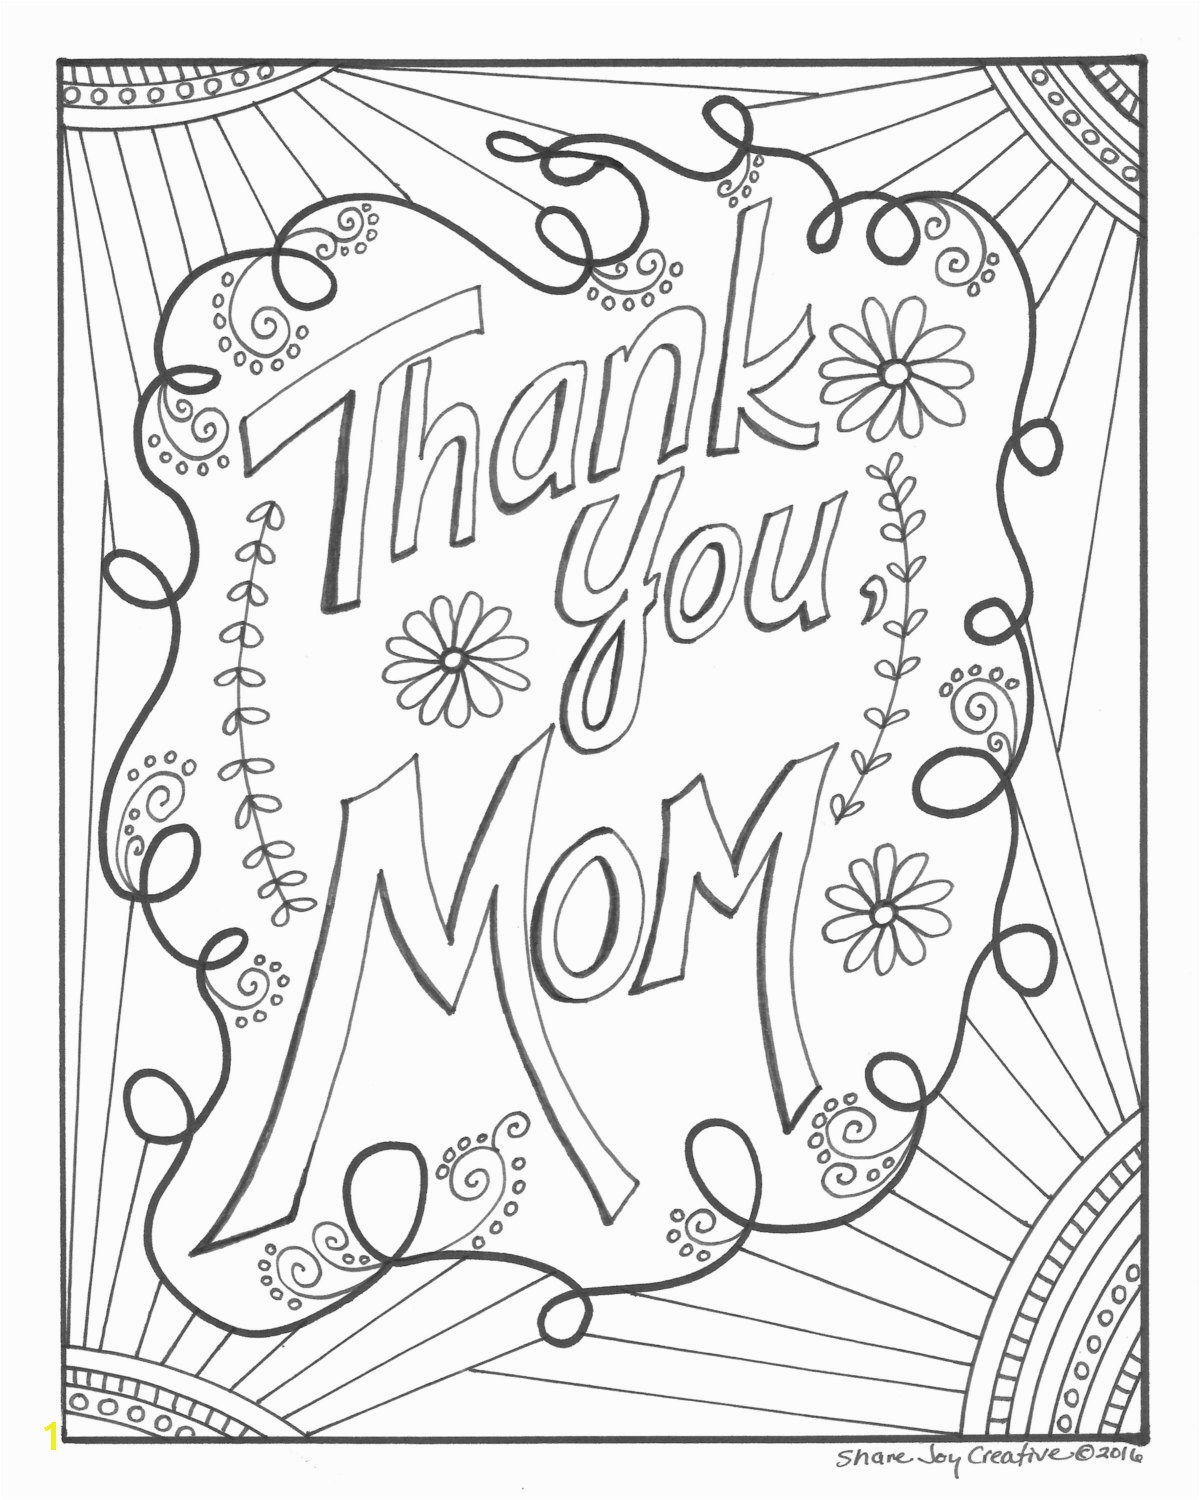 Give Thanks Coloring Page Beautiful Cool Coloring Page Unique Witch Coloring Pages New Crayola Pages 0d